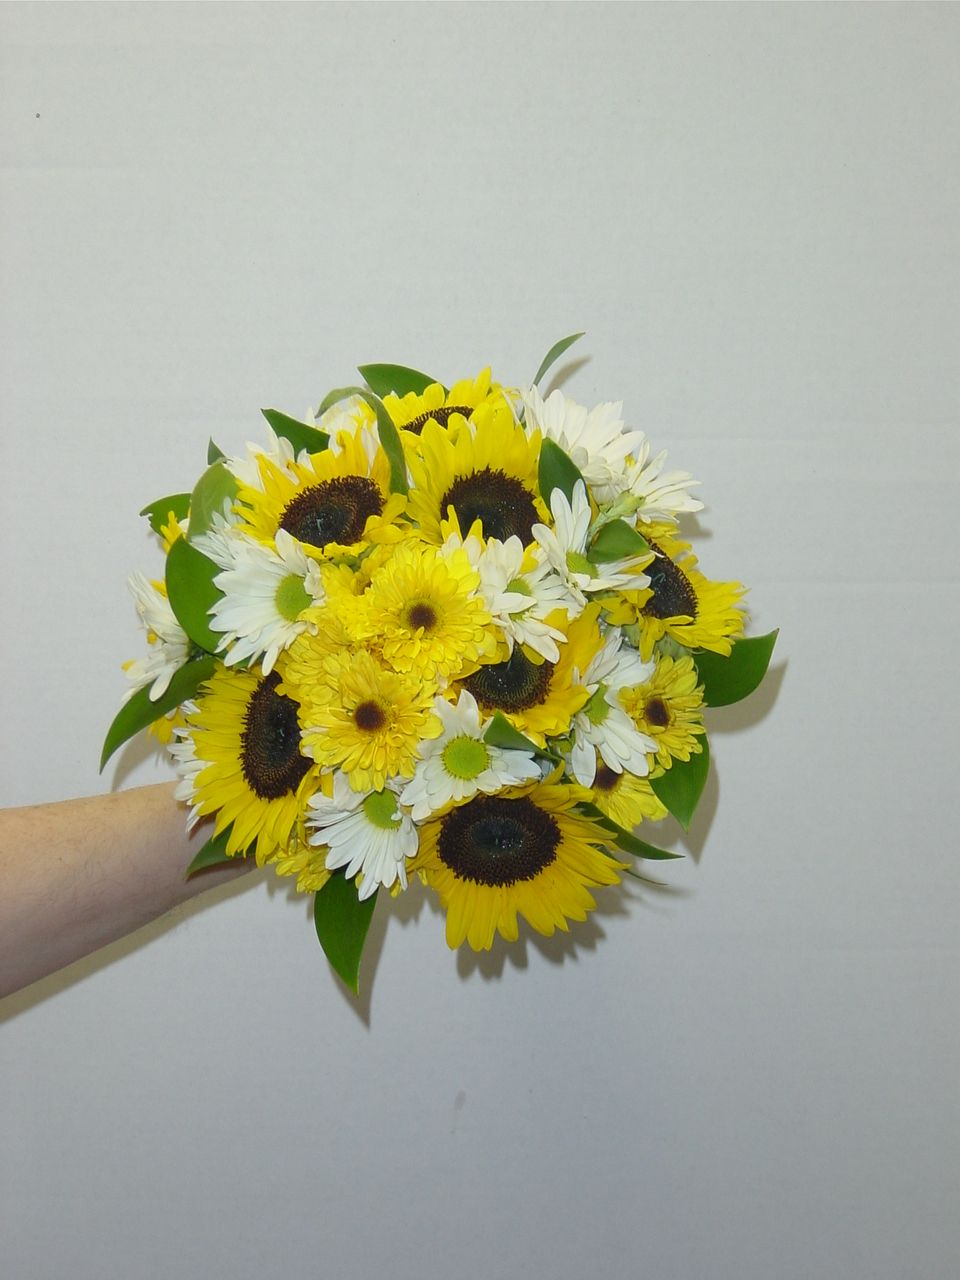 Yellow weddings:  Bouquet of sunflowers and two types of daisy mums. Designed by WhimsicalWelcomes.com